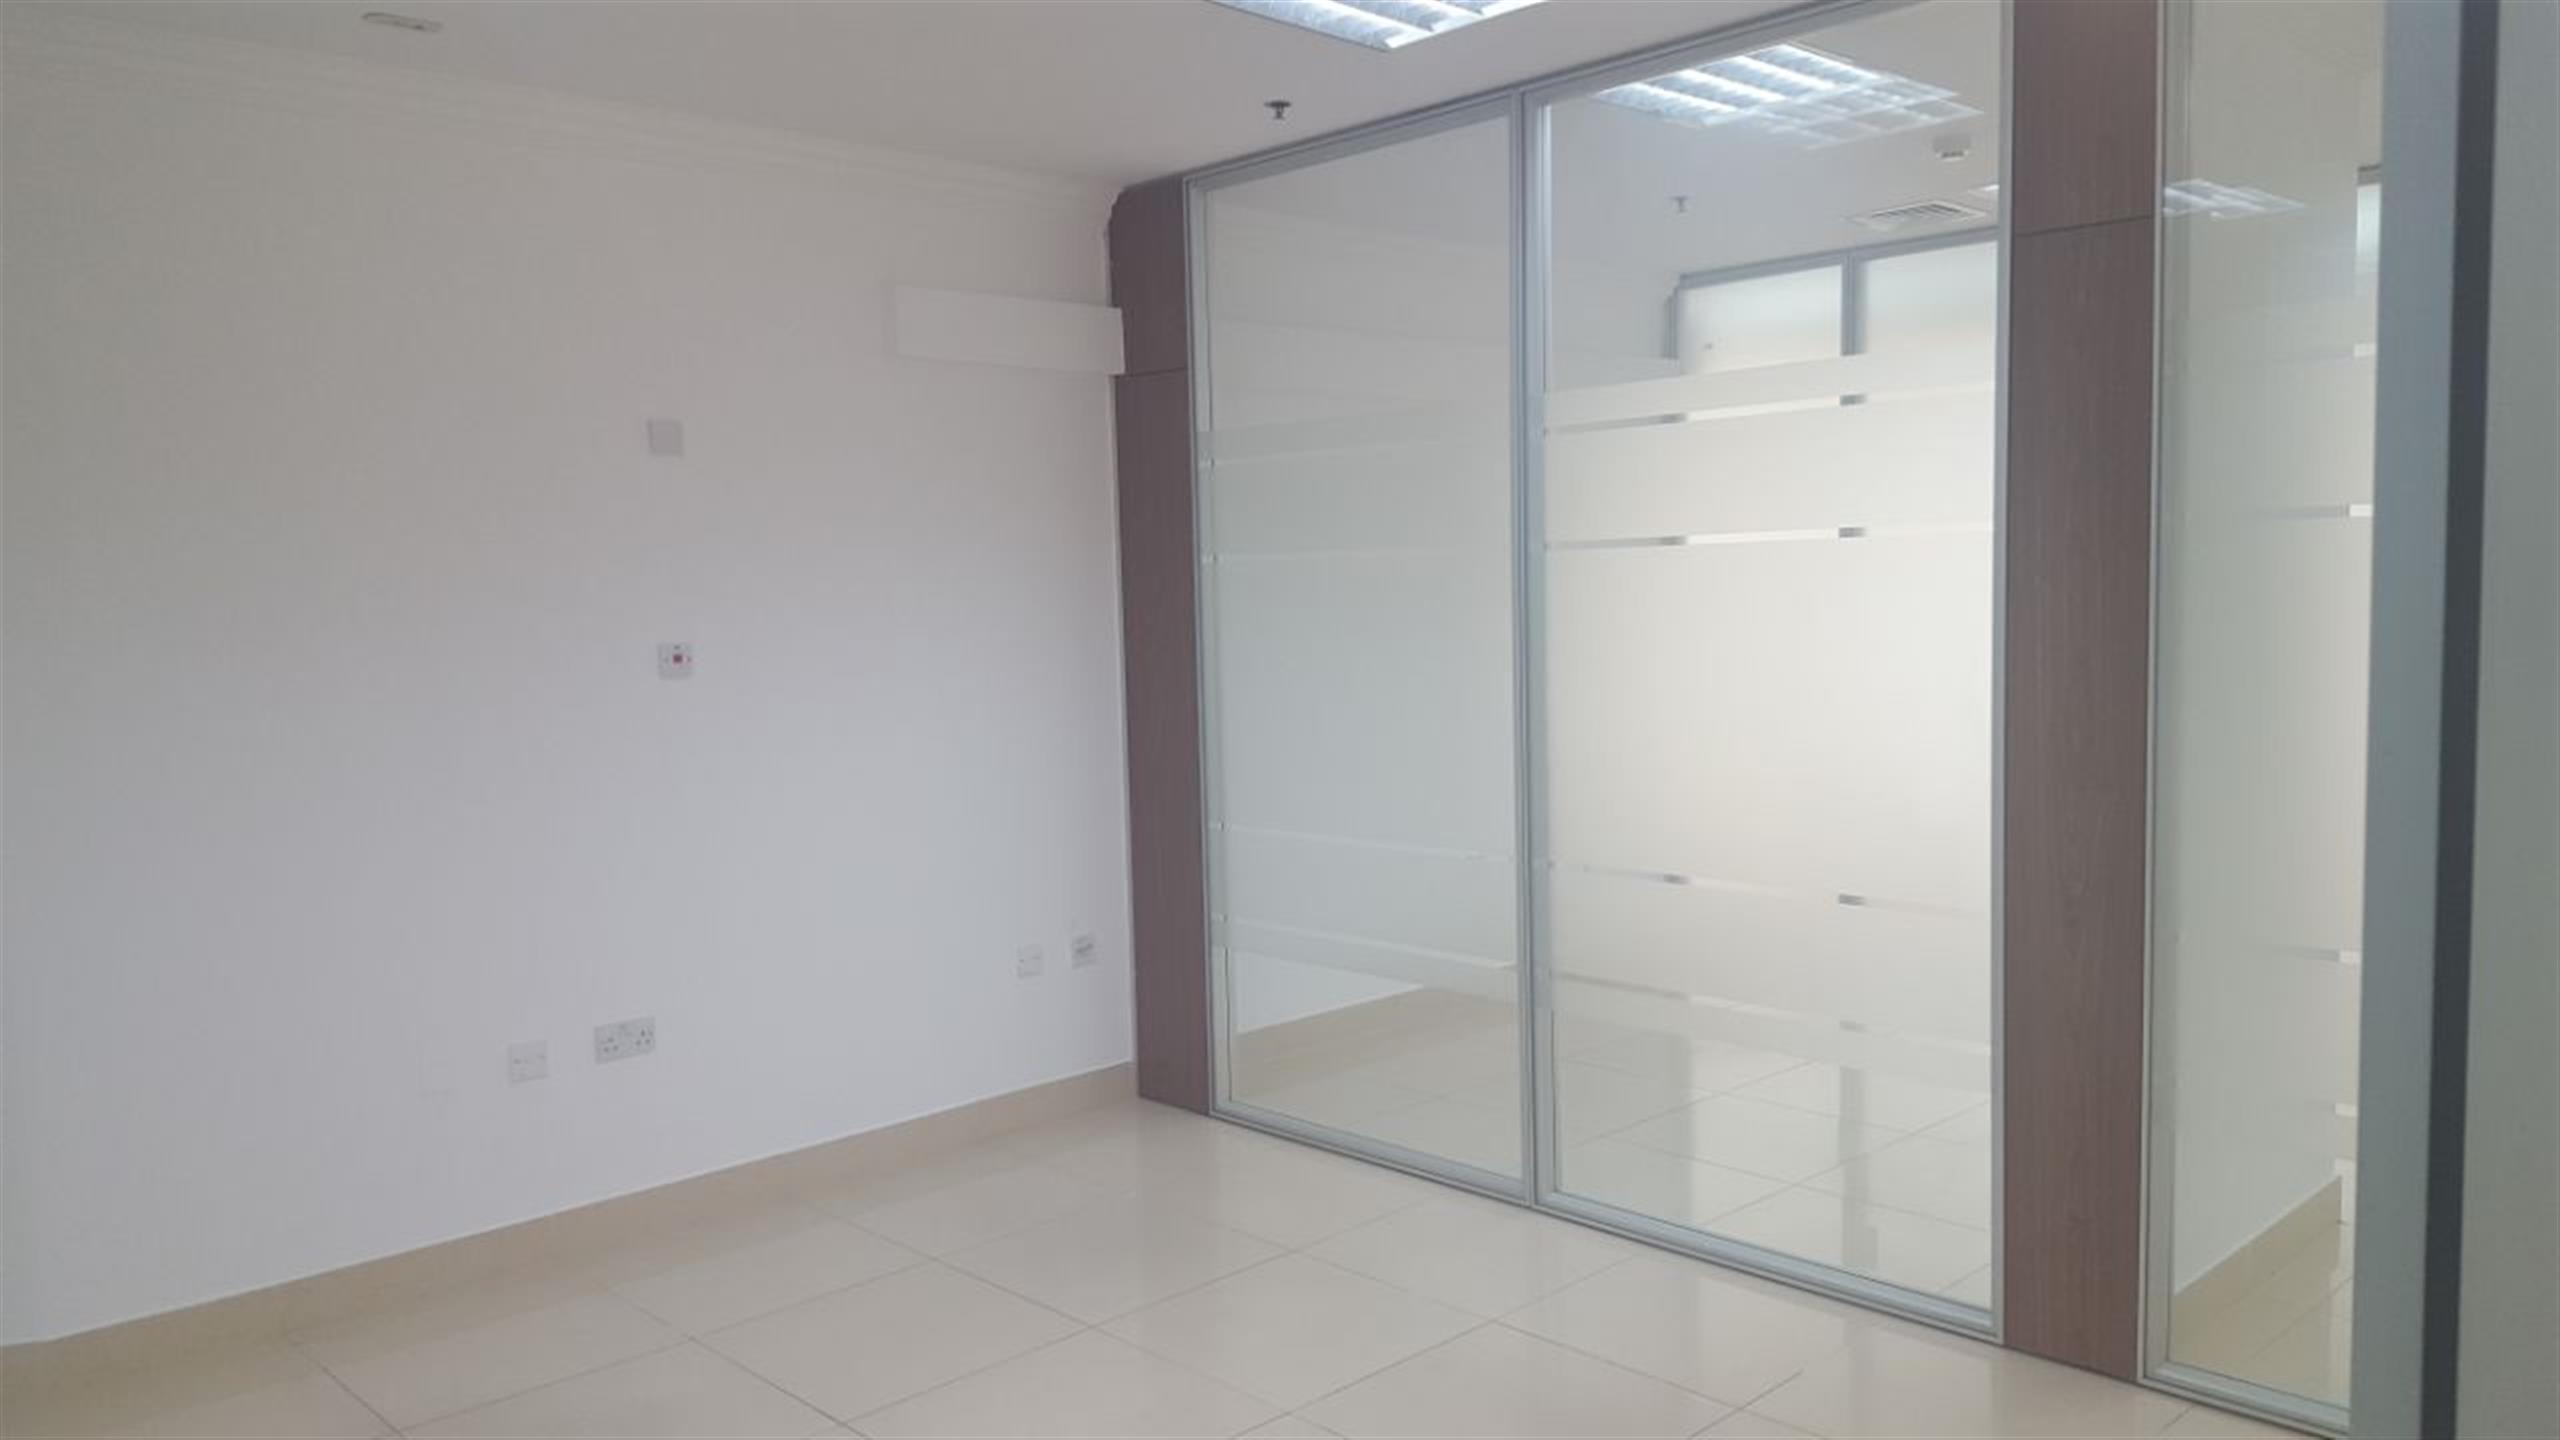 14 Rooms Partitioned Office space for rent at Al Sadd | Qatar Living